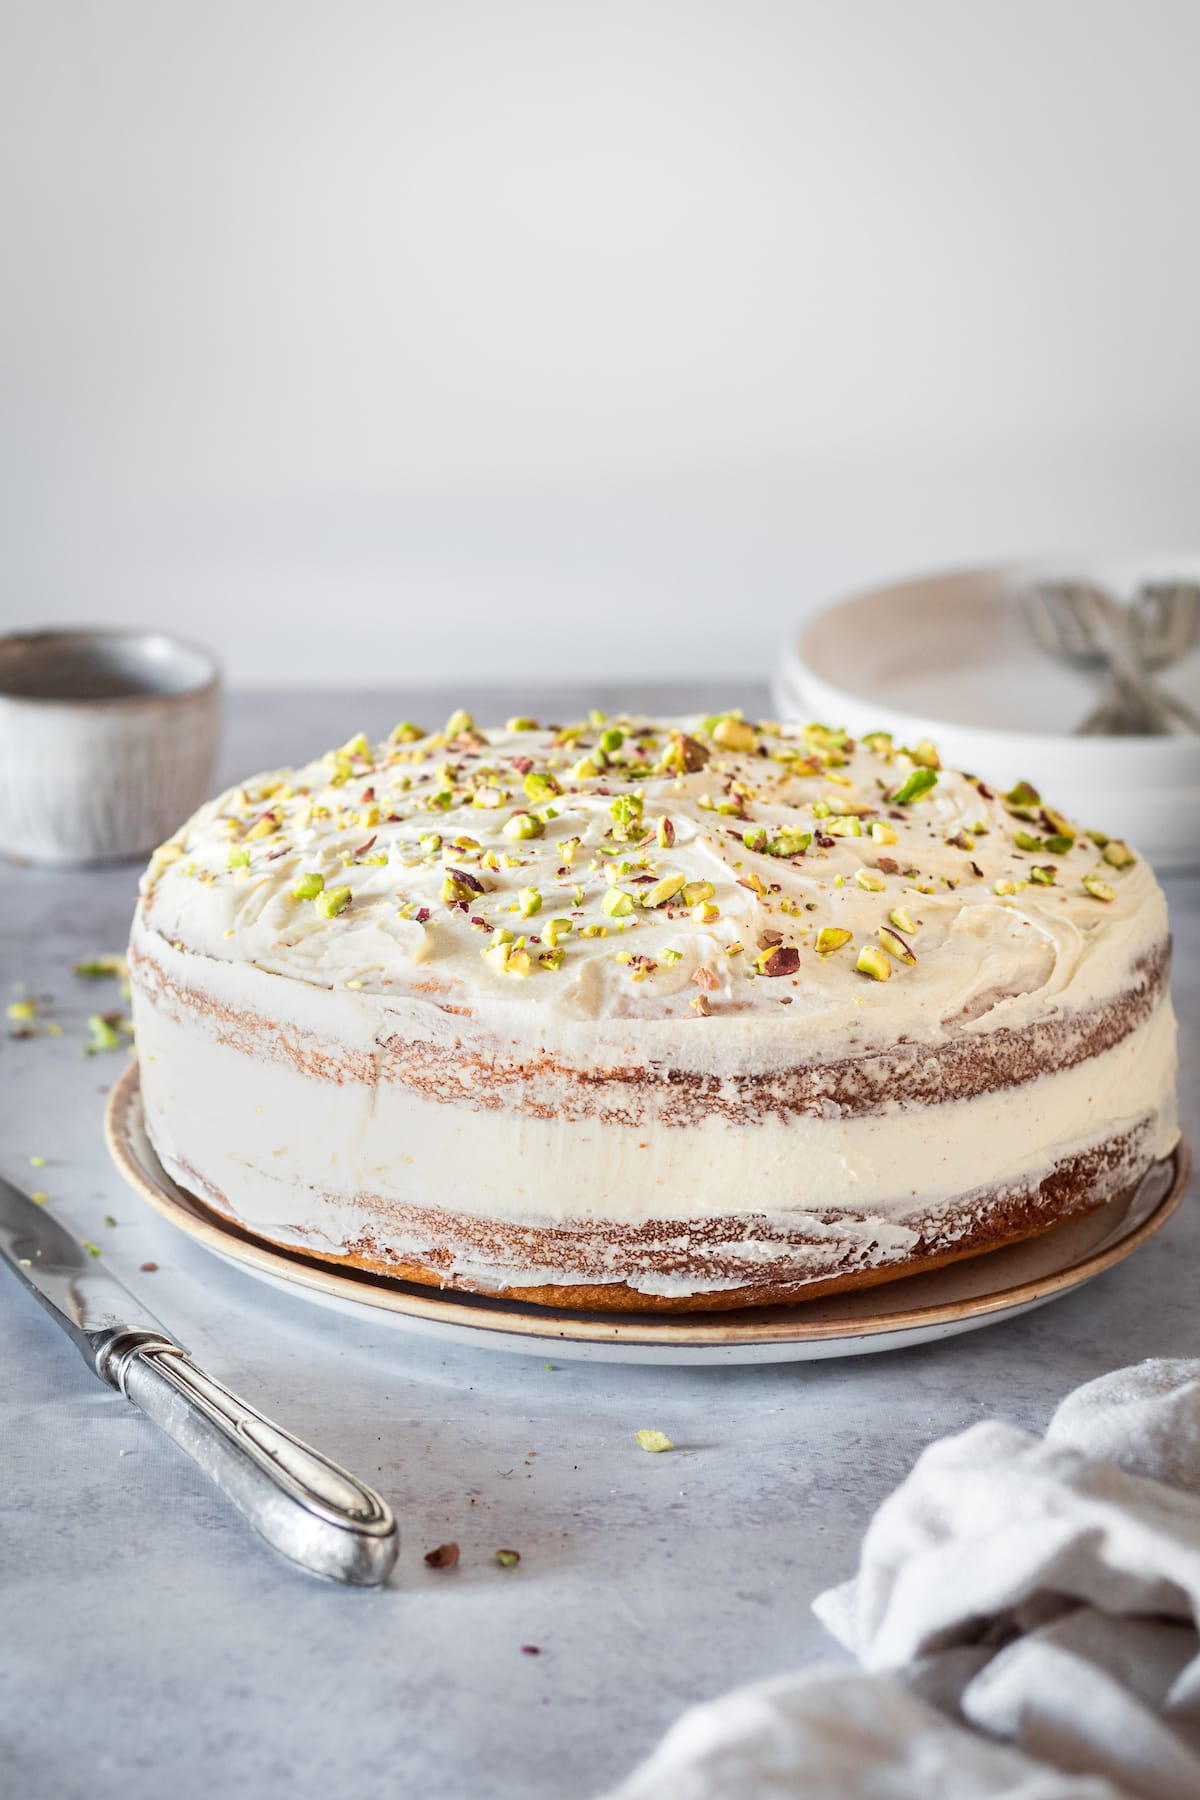 Whole Pistachio Cake pictured with knife, small bowl, plates, and forks